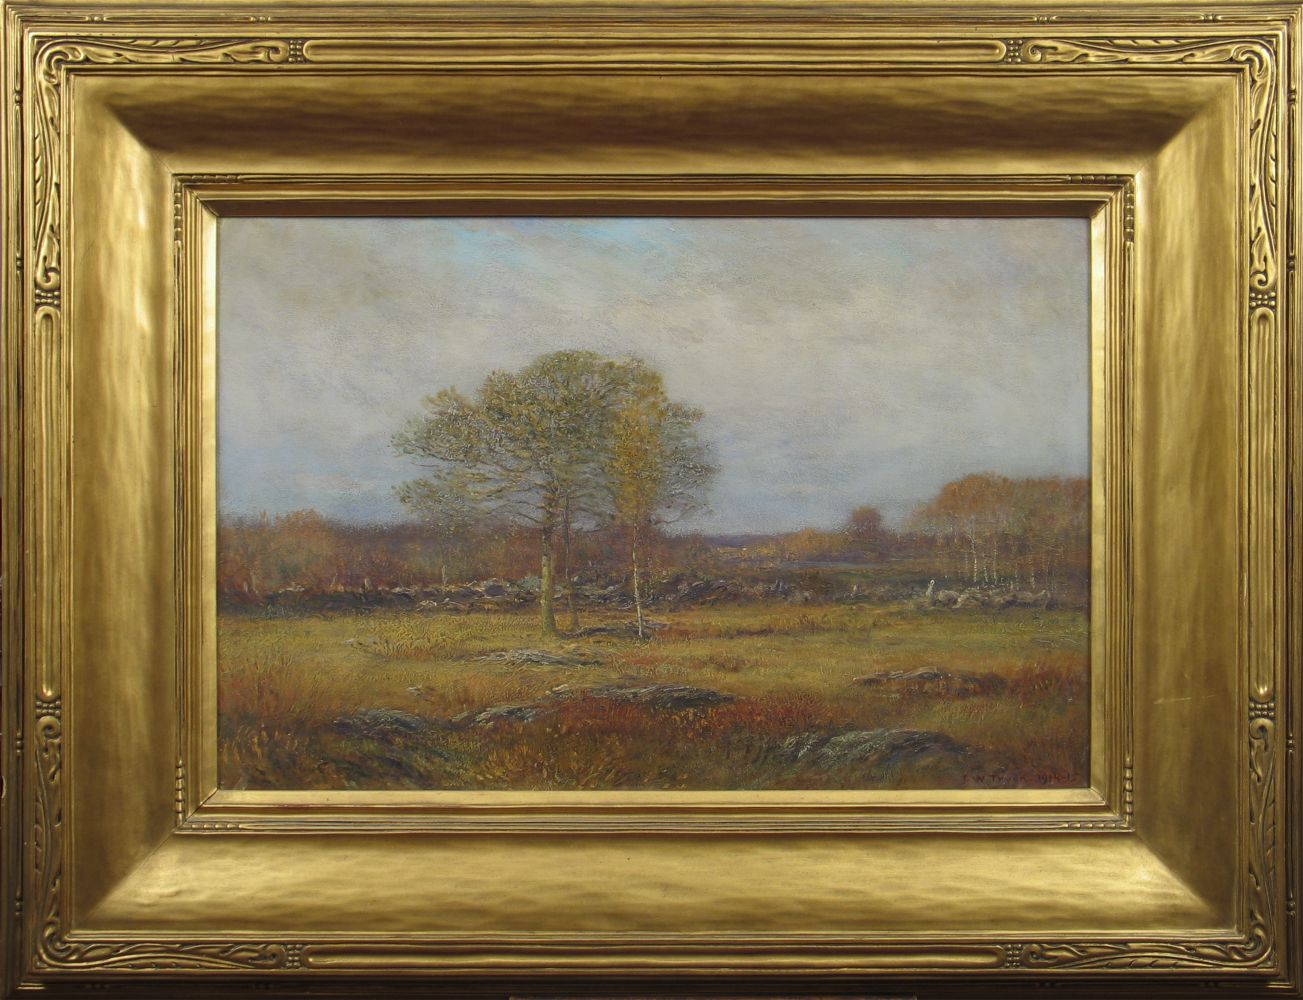 Dwight William Tryon (1849–1925), Autumn Fields, 1914-15, oil on panel, 16 x 24 in., signed and dated lower right: D. W. Tryon 1914–15